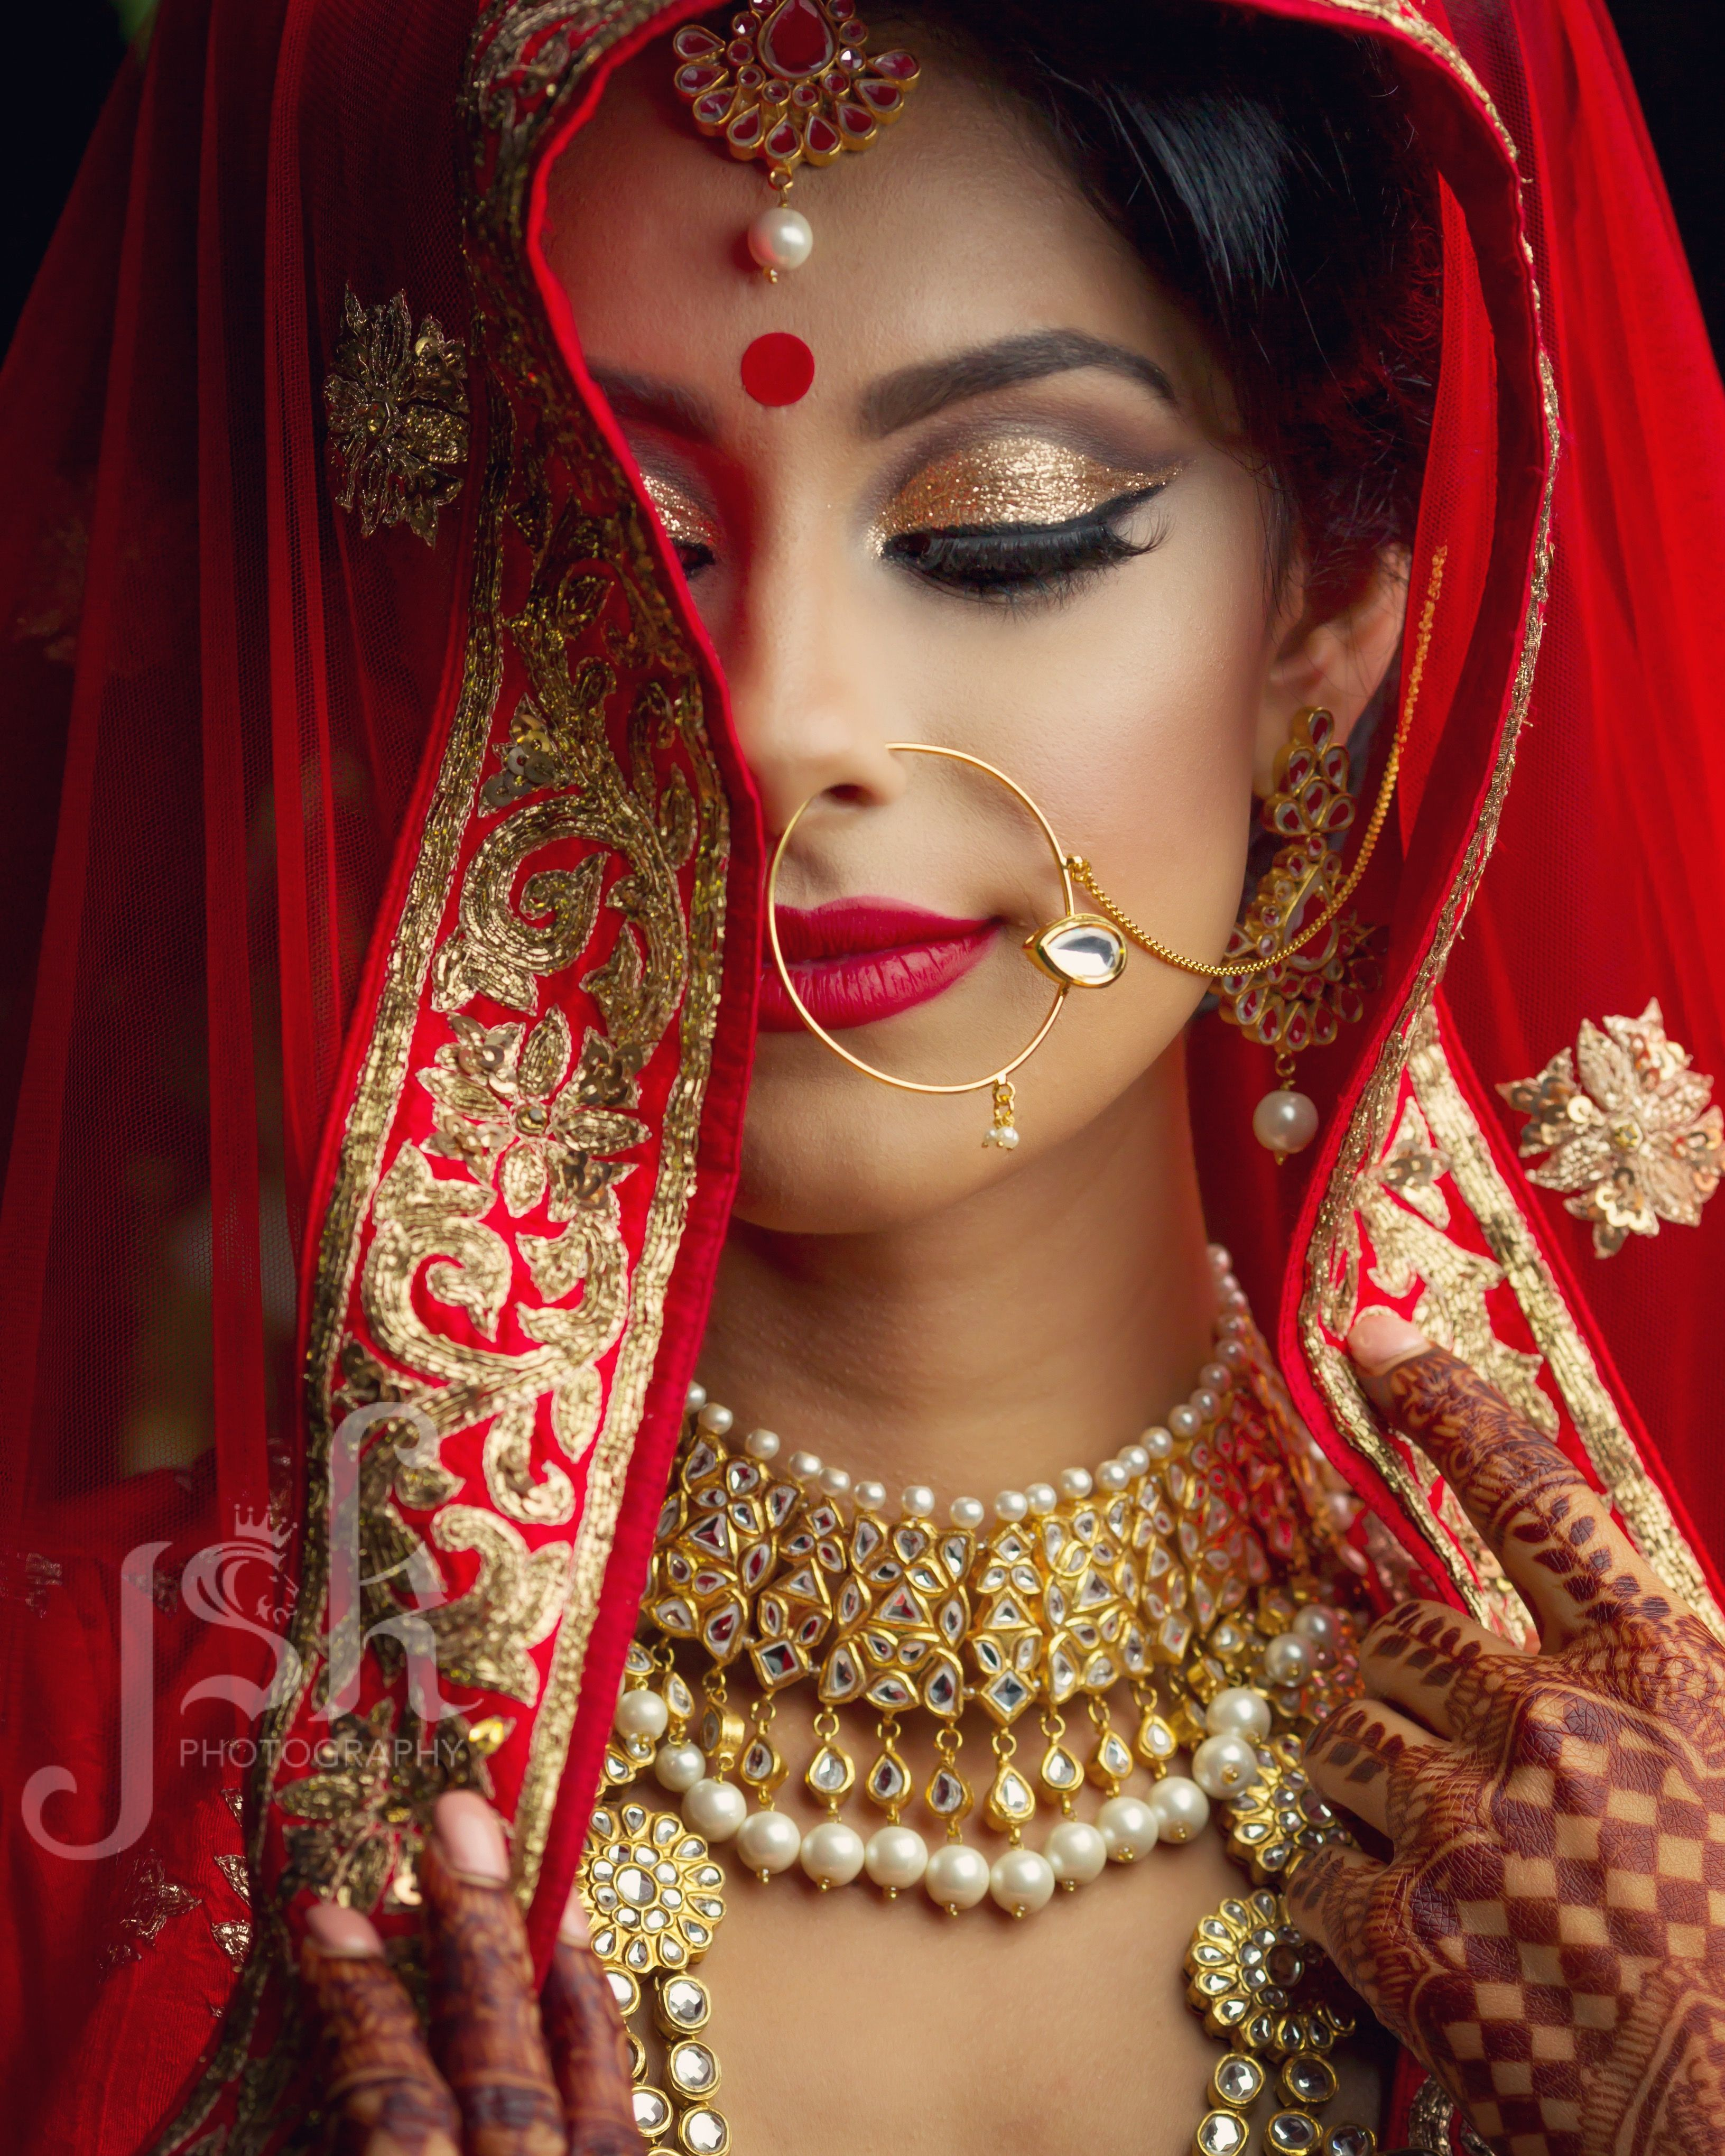 editorial photo shoot by jsk photography. traditional red lengha